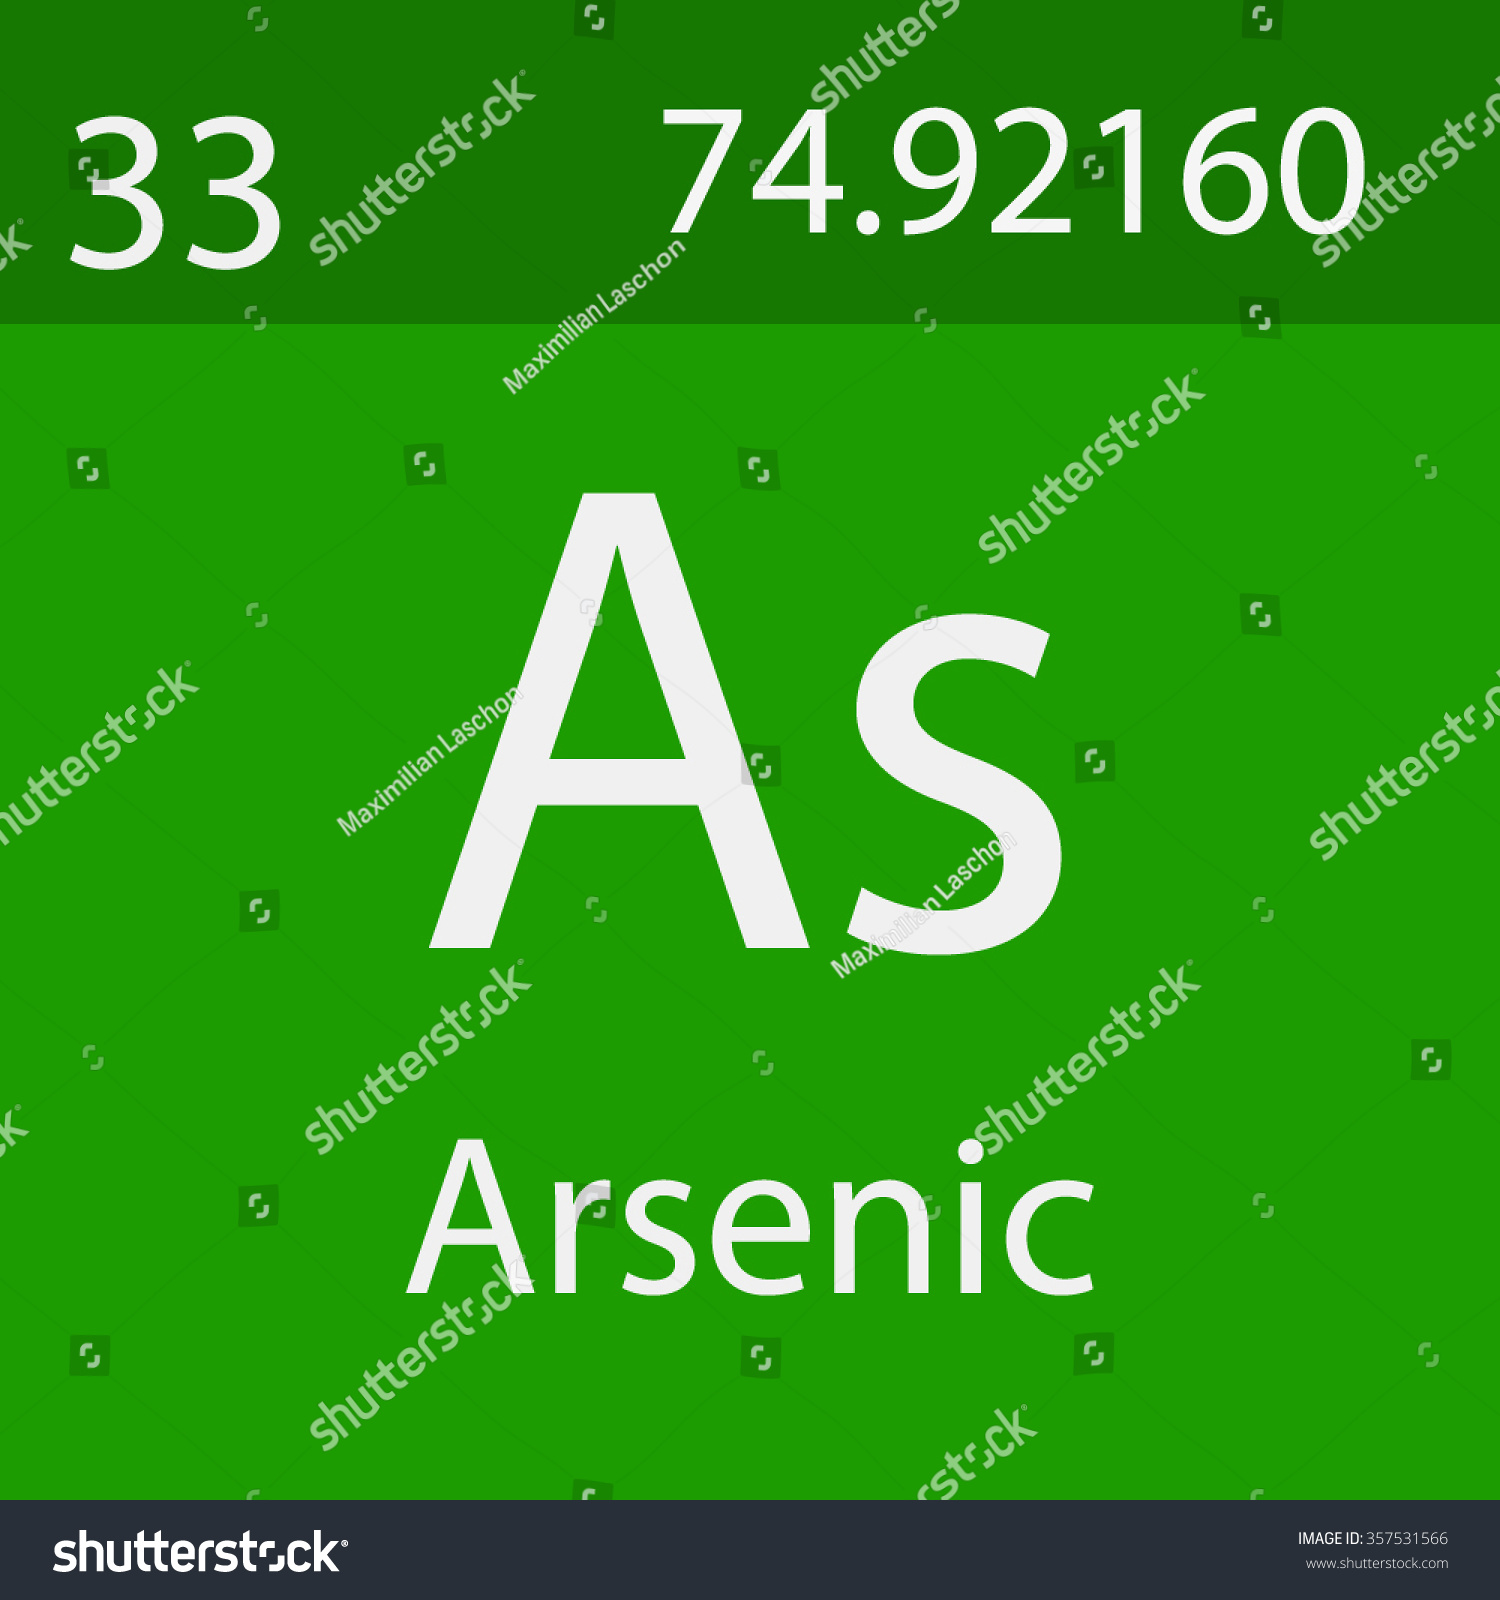 Arsenic chemical symbol stock vector 357531566 shutterstock arsenic chemical symbol biocorpaavc Image collections